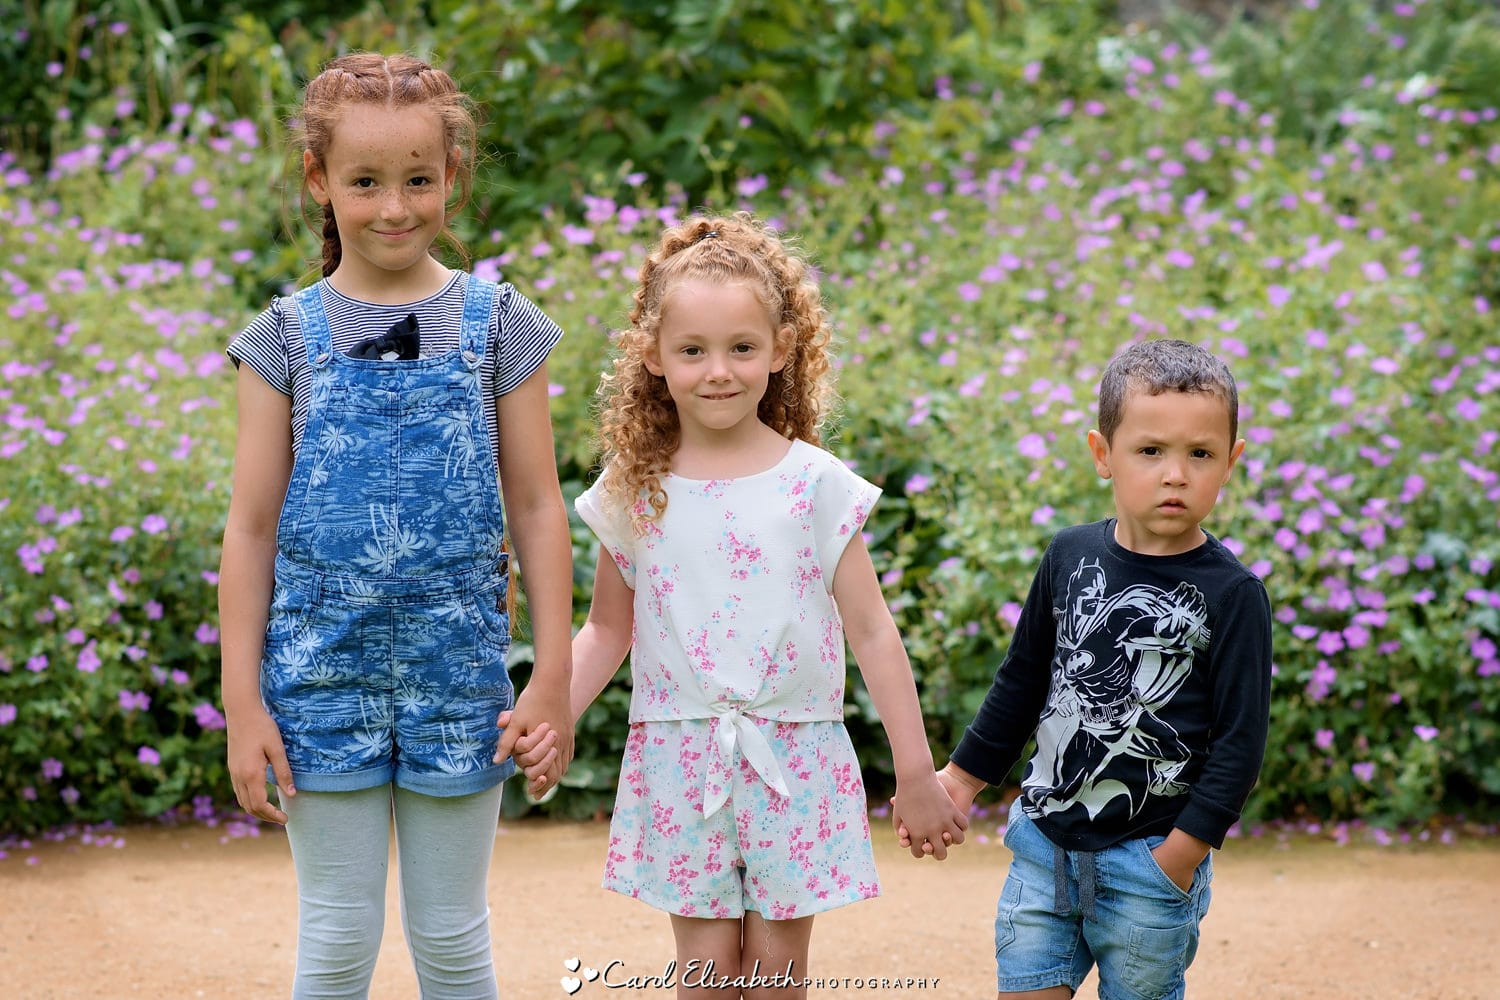 Childrens photoshoots in Oxfordshire